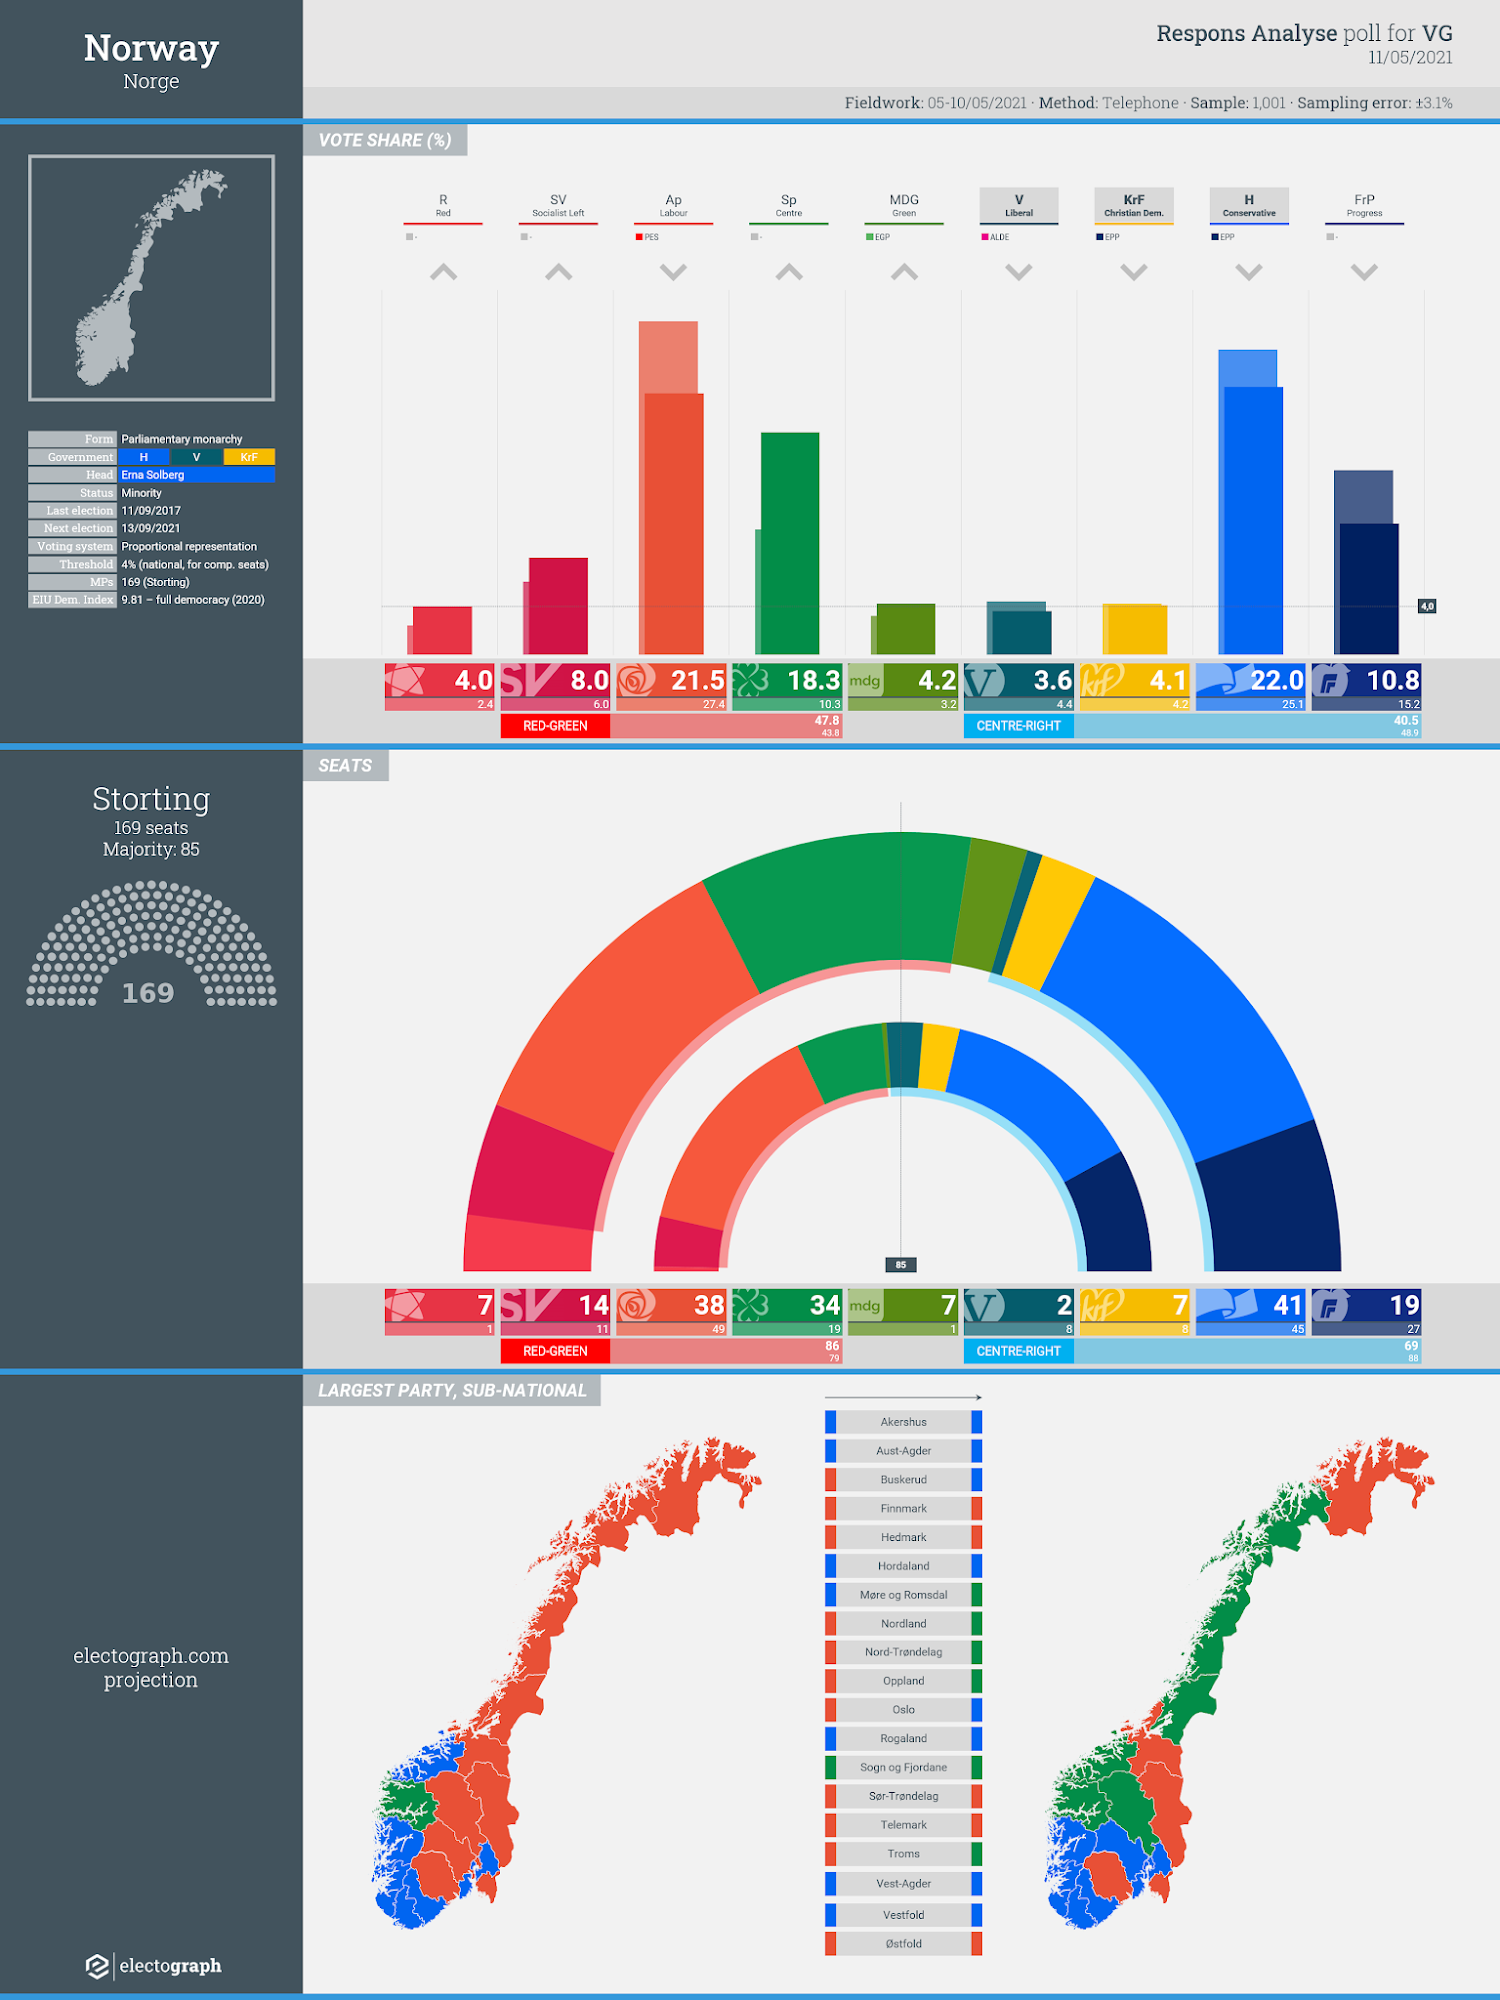 NORWAY: Respons Analyse poll chart for VG, 11 May 2021